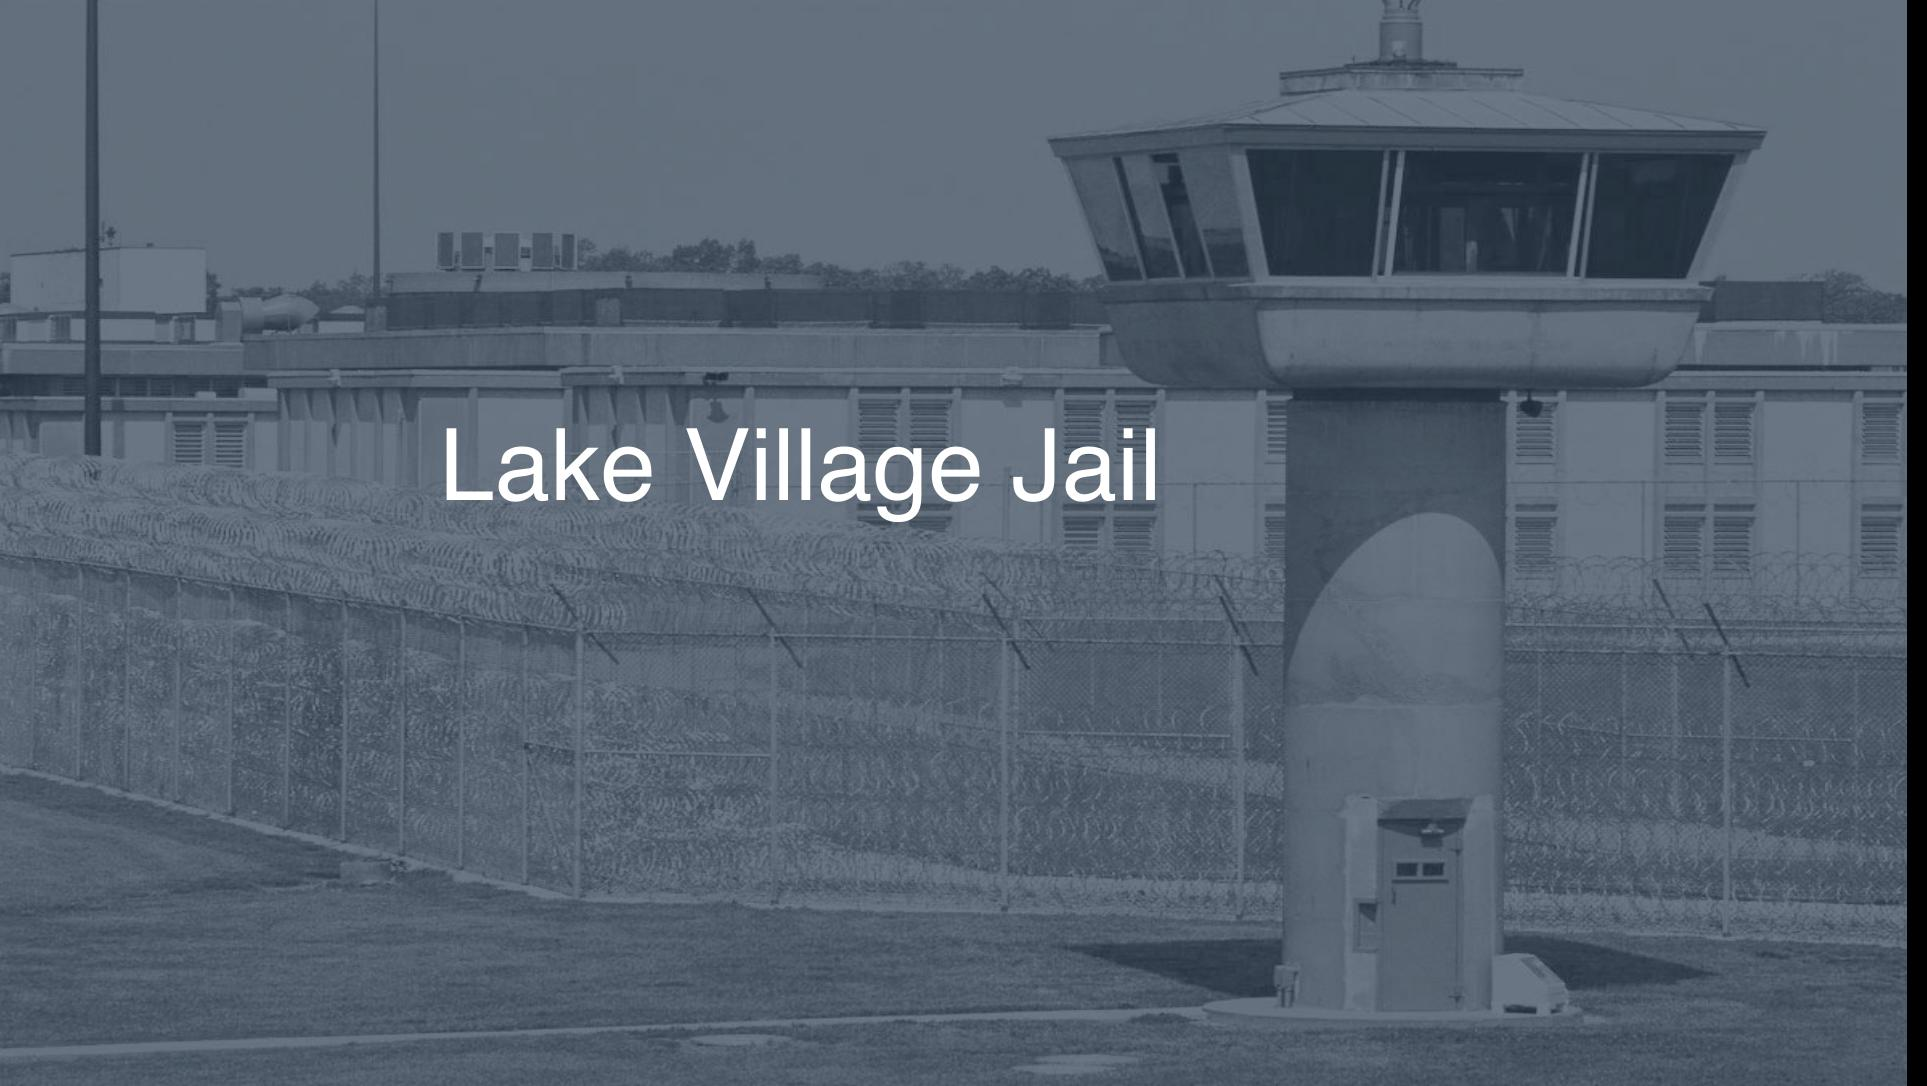 Lake Village Jail correctional facility picture